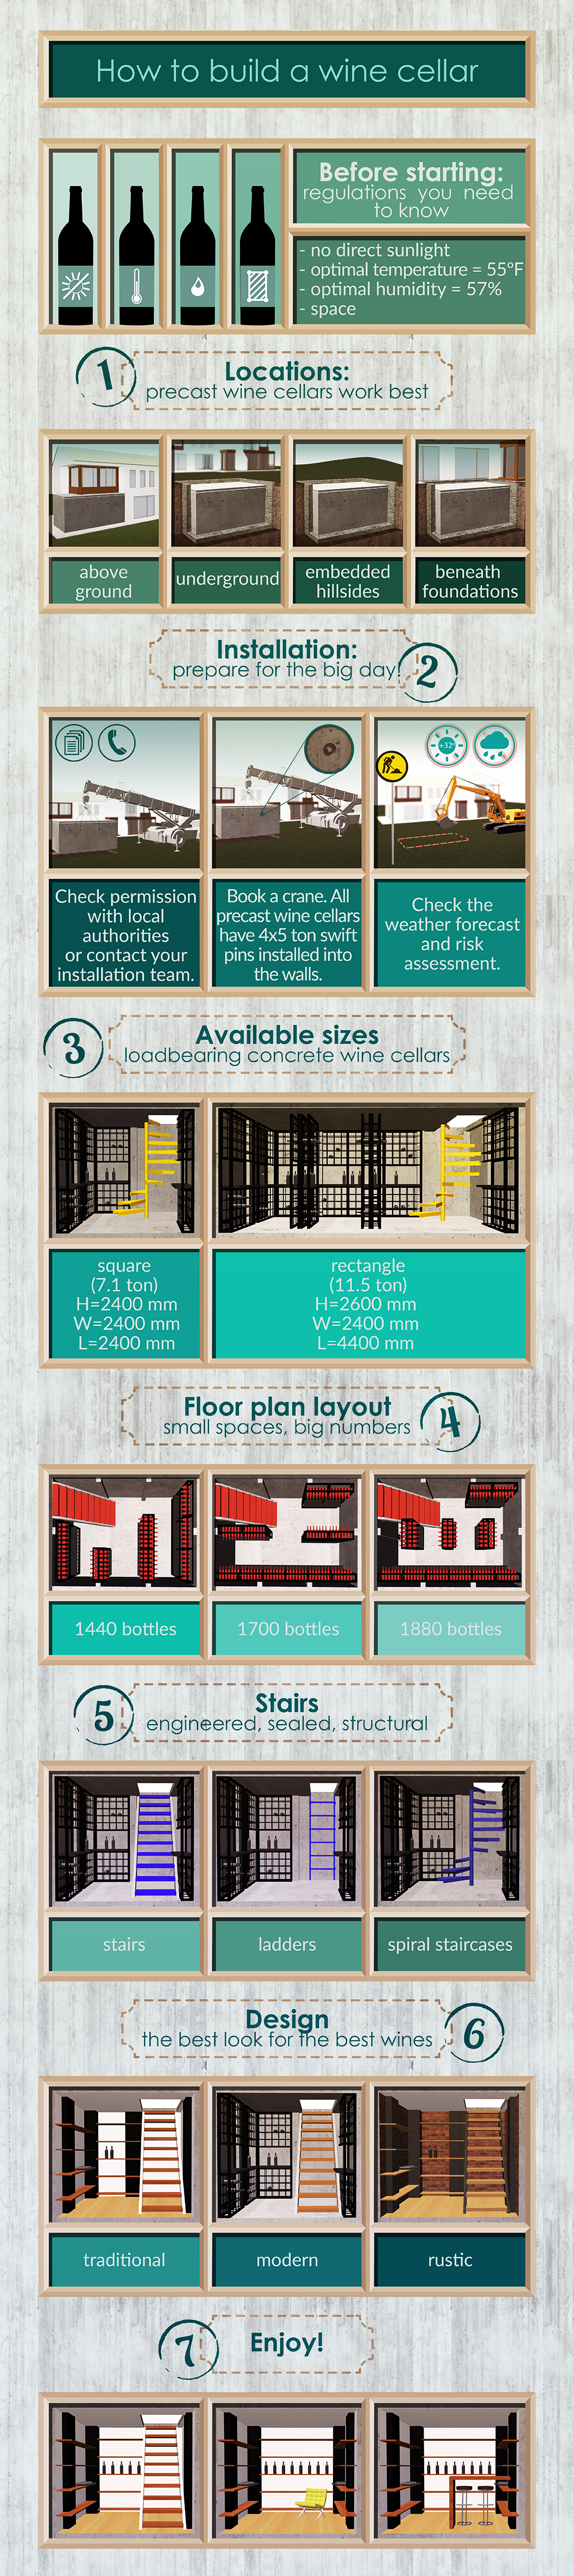 How to build a wine cellar infographic